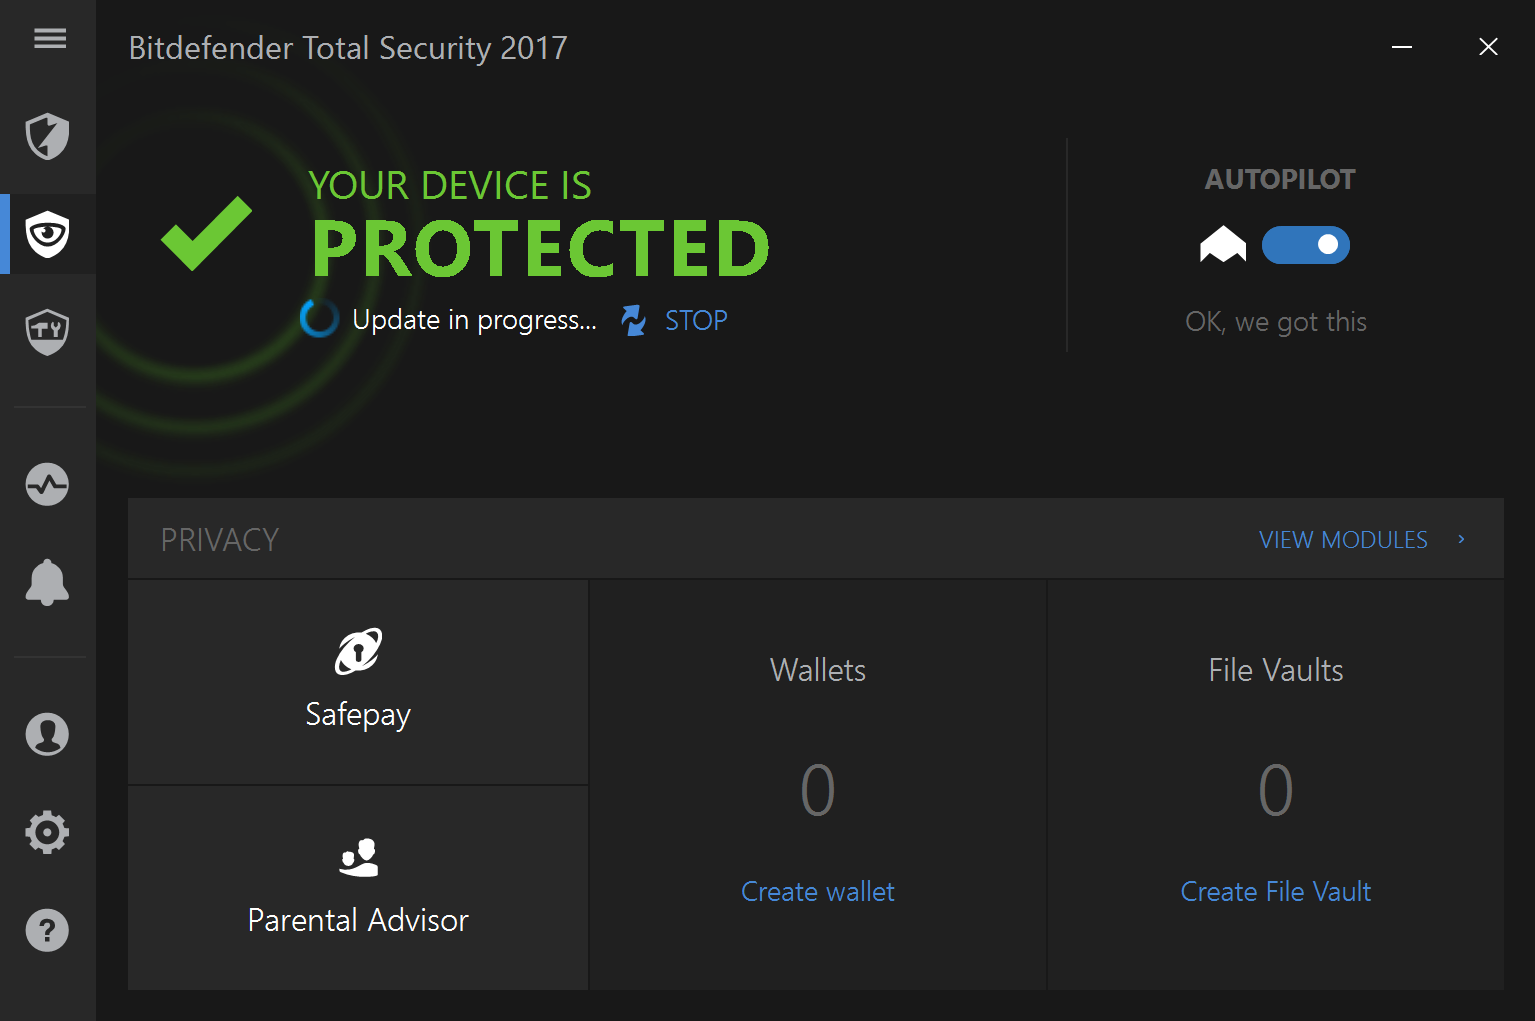 interfata-bitdefender-2017